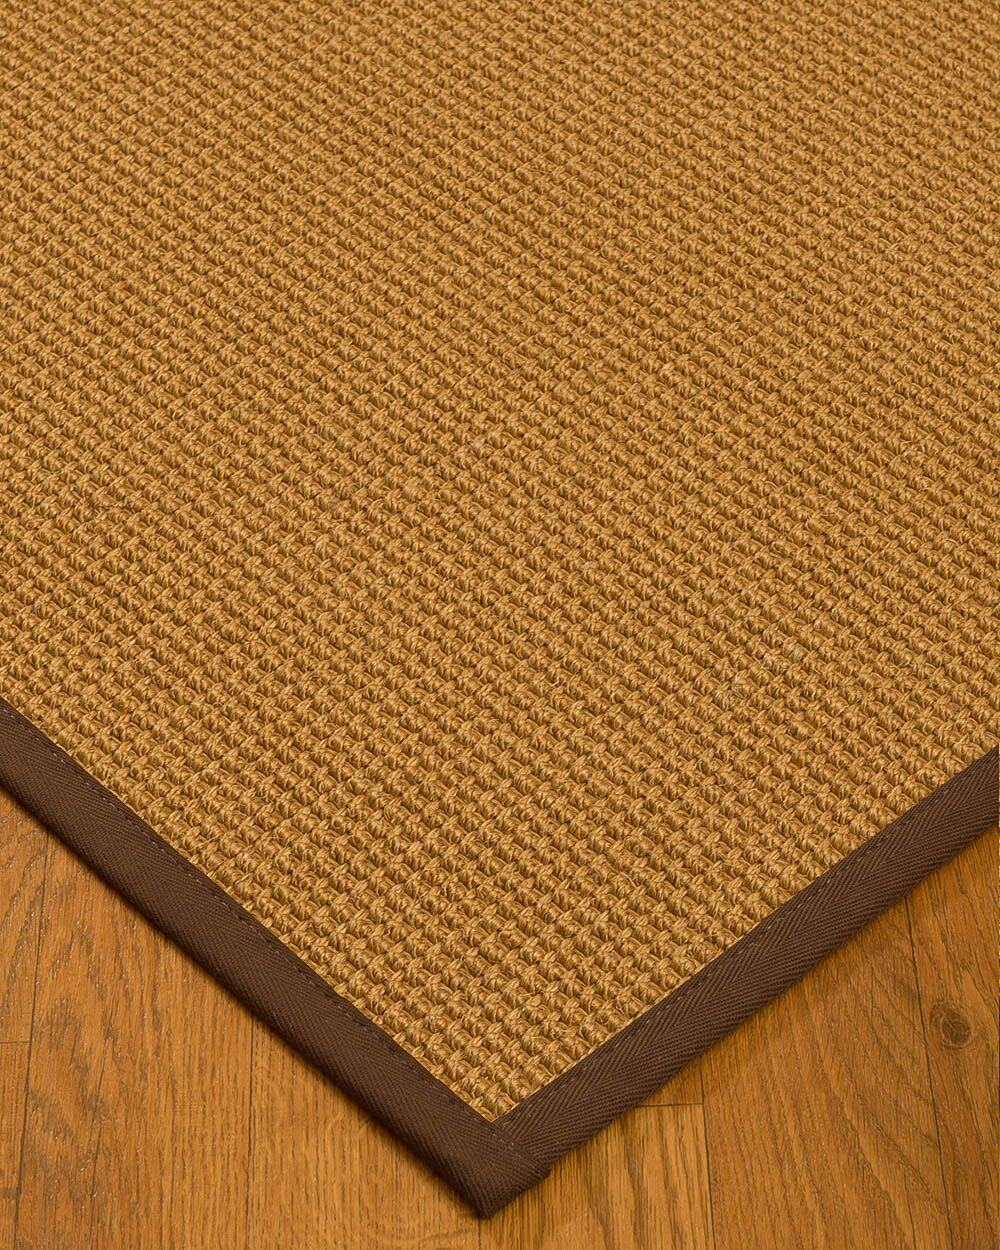 Aula Border Hand-Woven Brown Area Rug Rug Size: Rectangle 9' x 12', Rug Pad Included: Yes